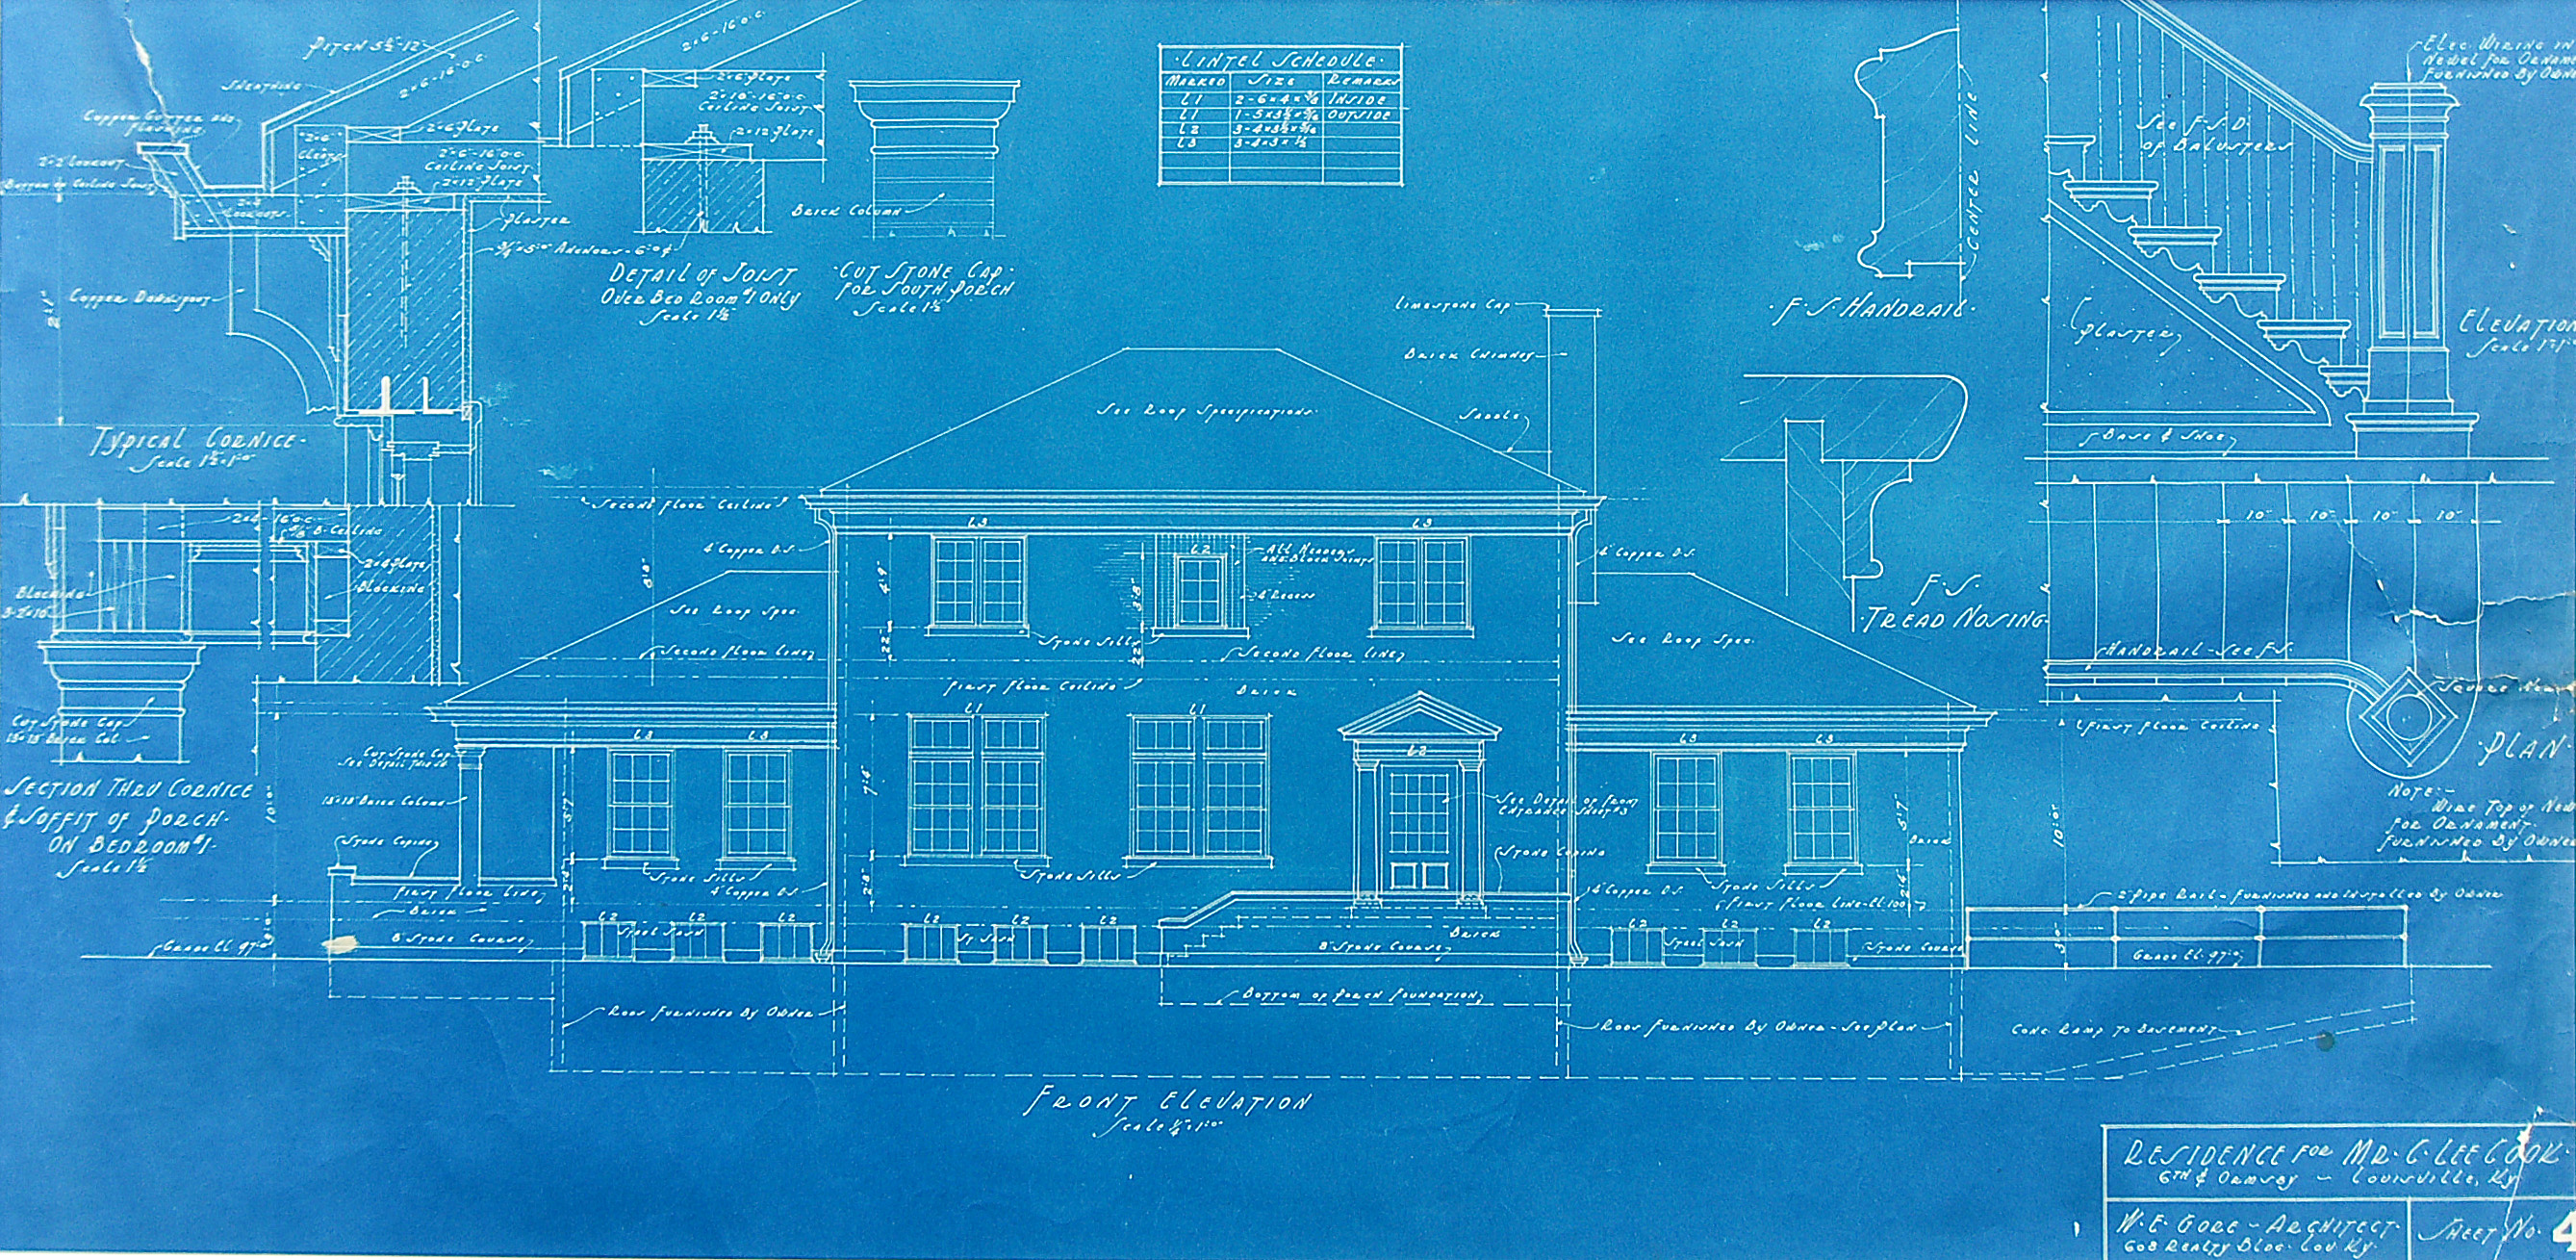 1244 sixth street the blueprints for Blueprints for my home